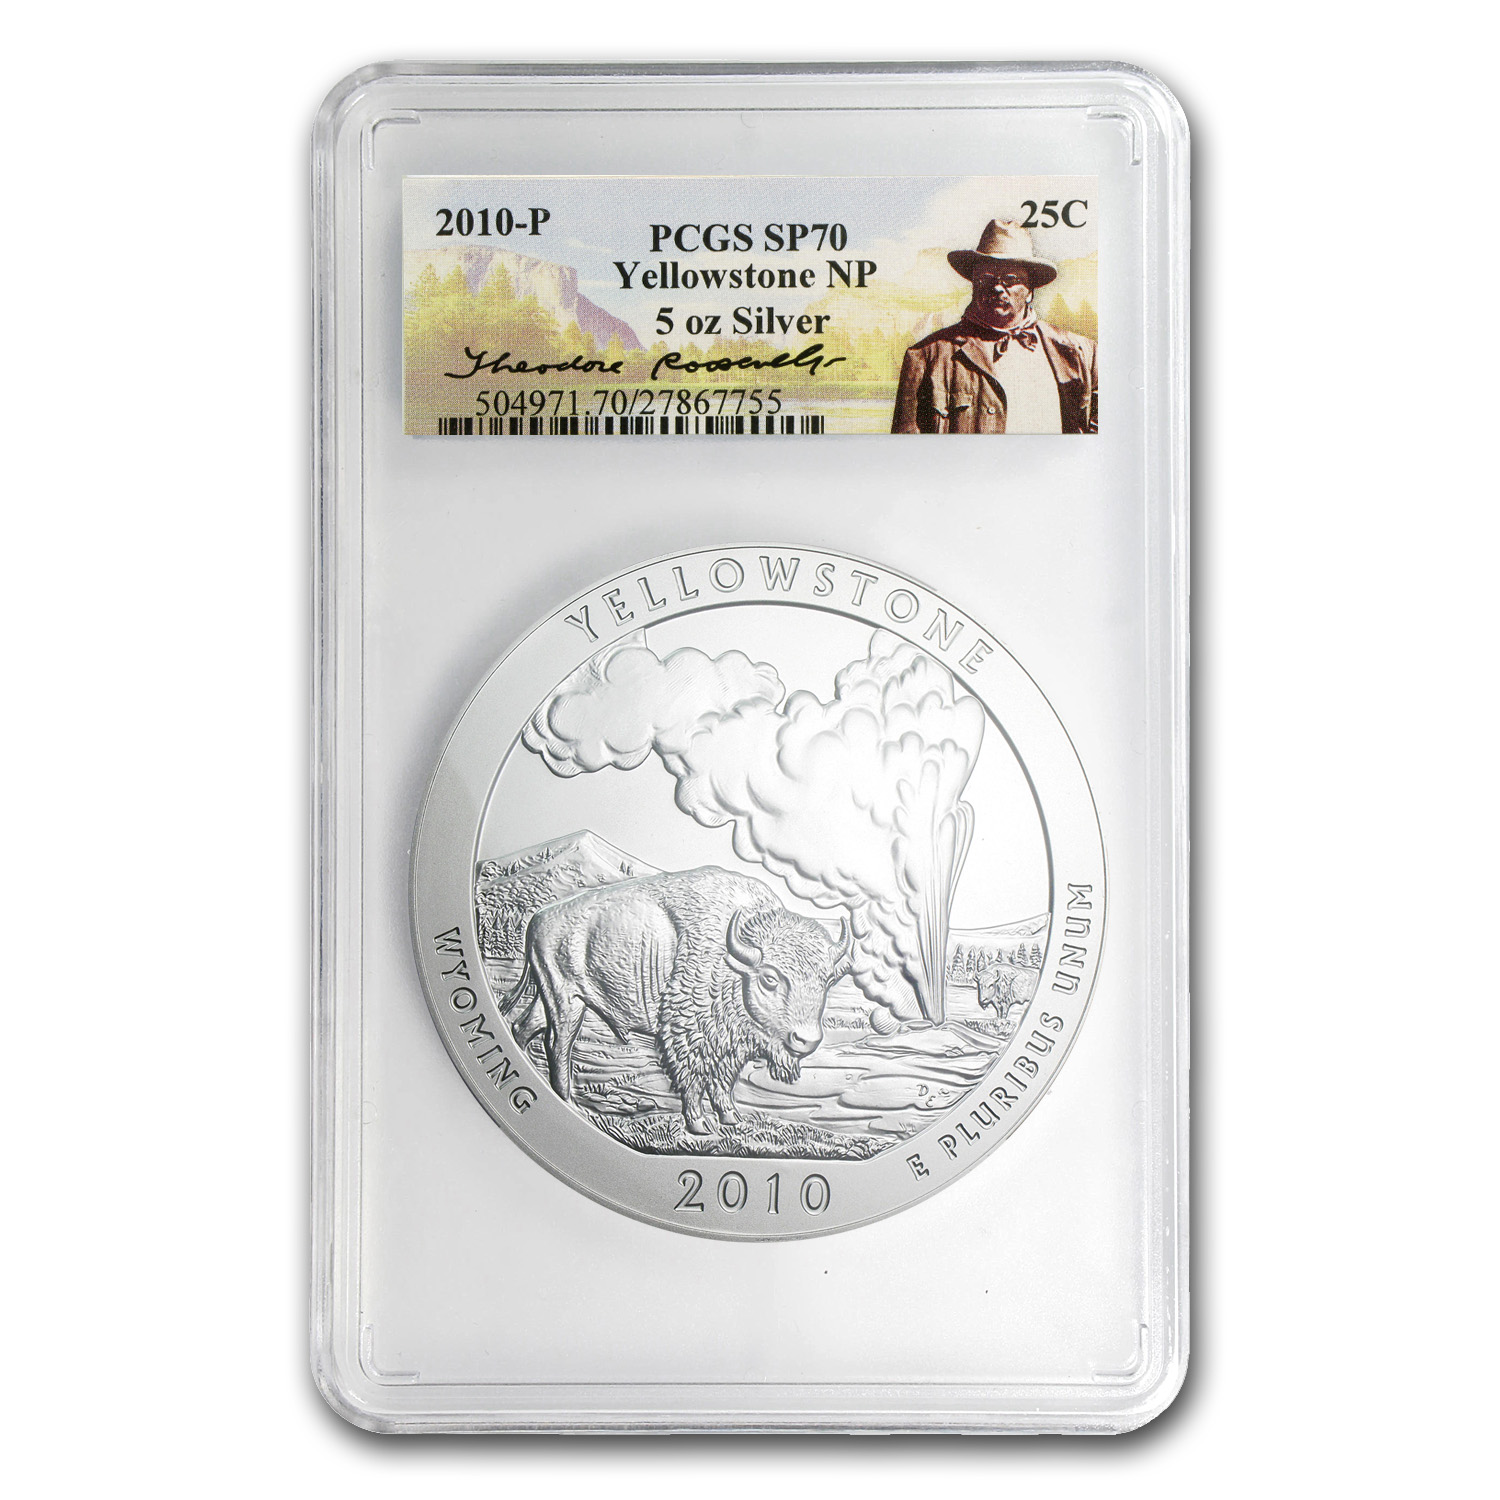 2010-P 5 oz Silver ATB Yellowstone SP-70 PCGS (Roosevelt)